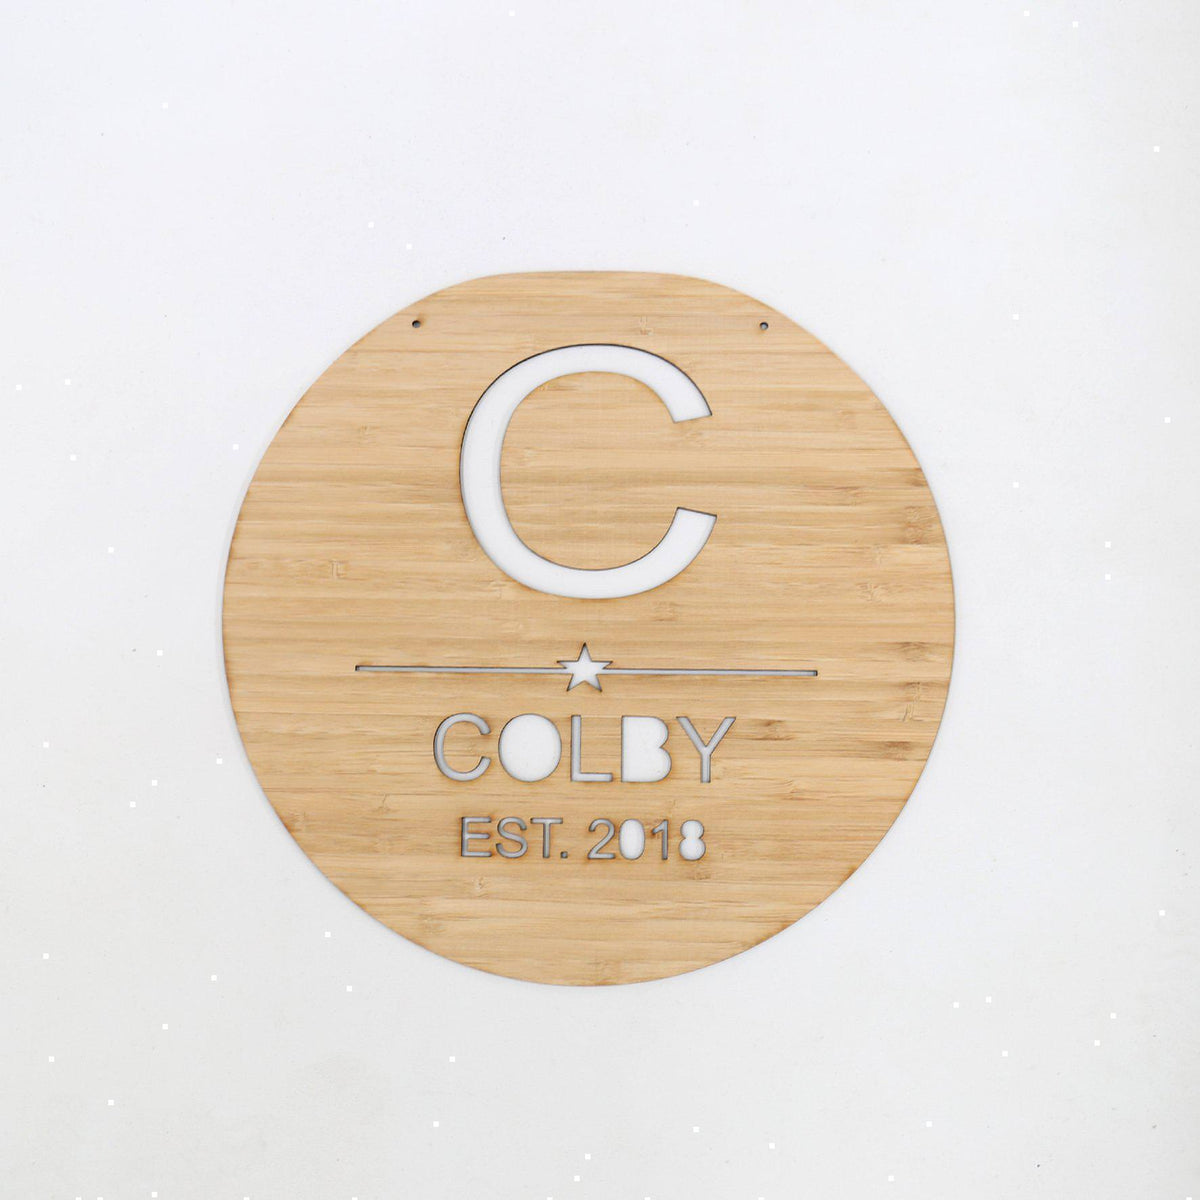 Sample / Second: Round Wooden Plaque